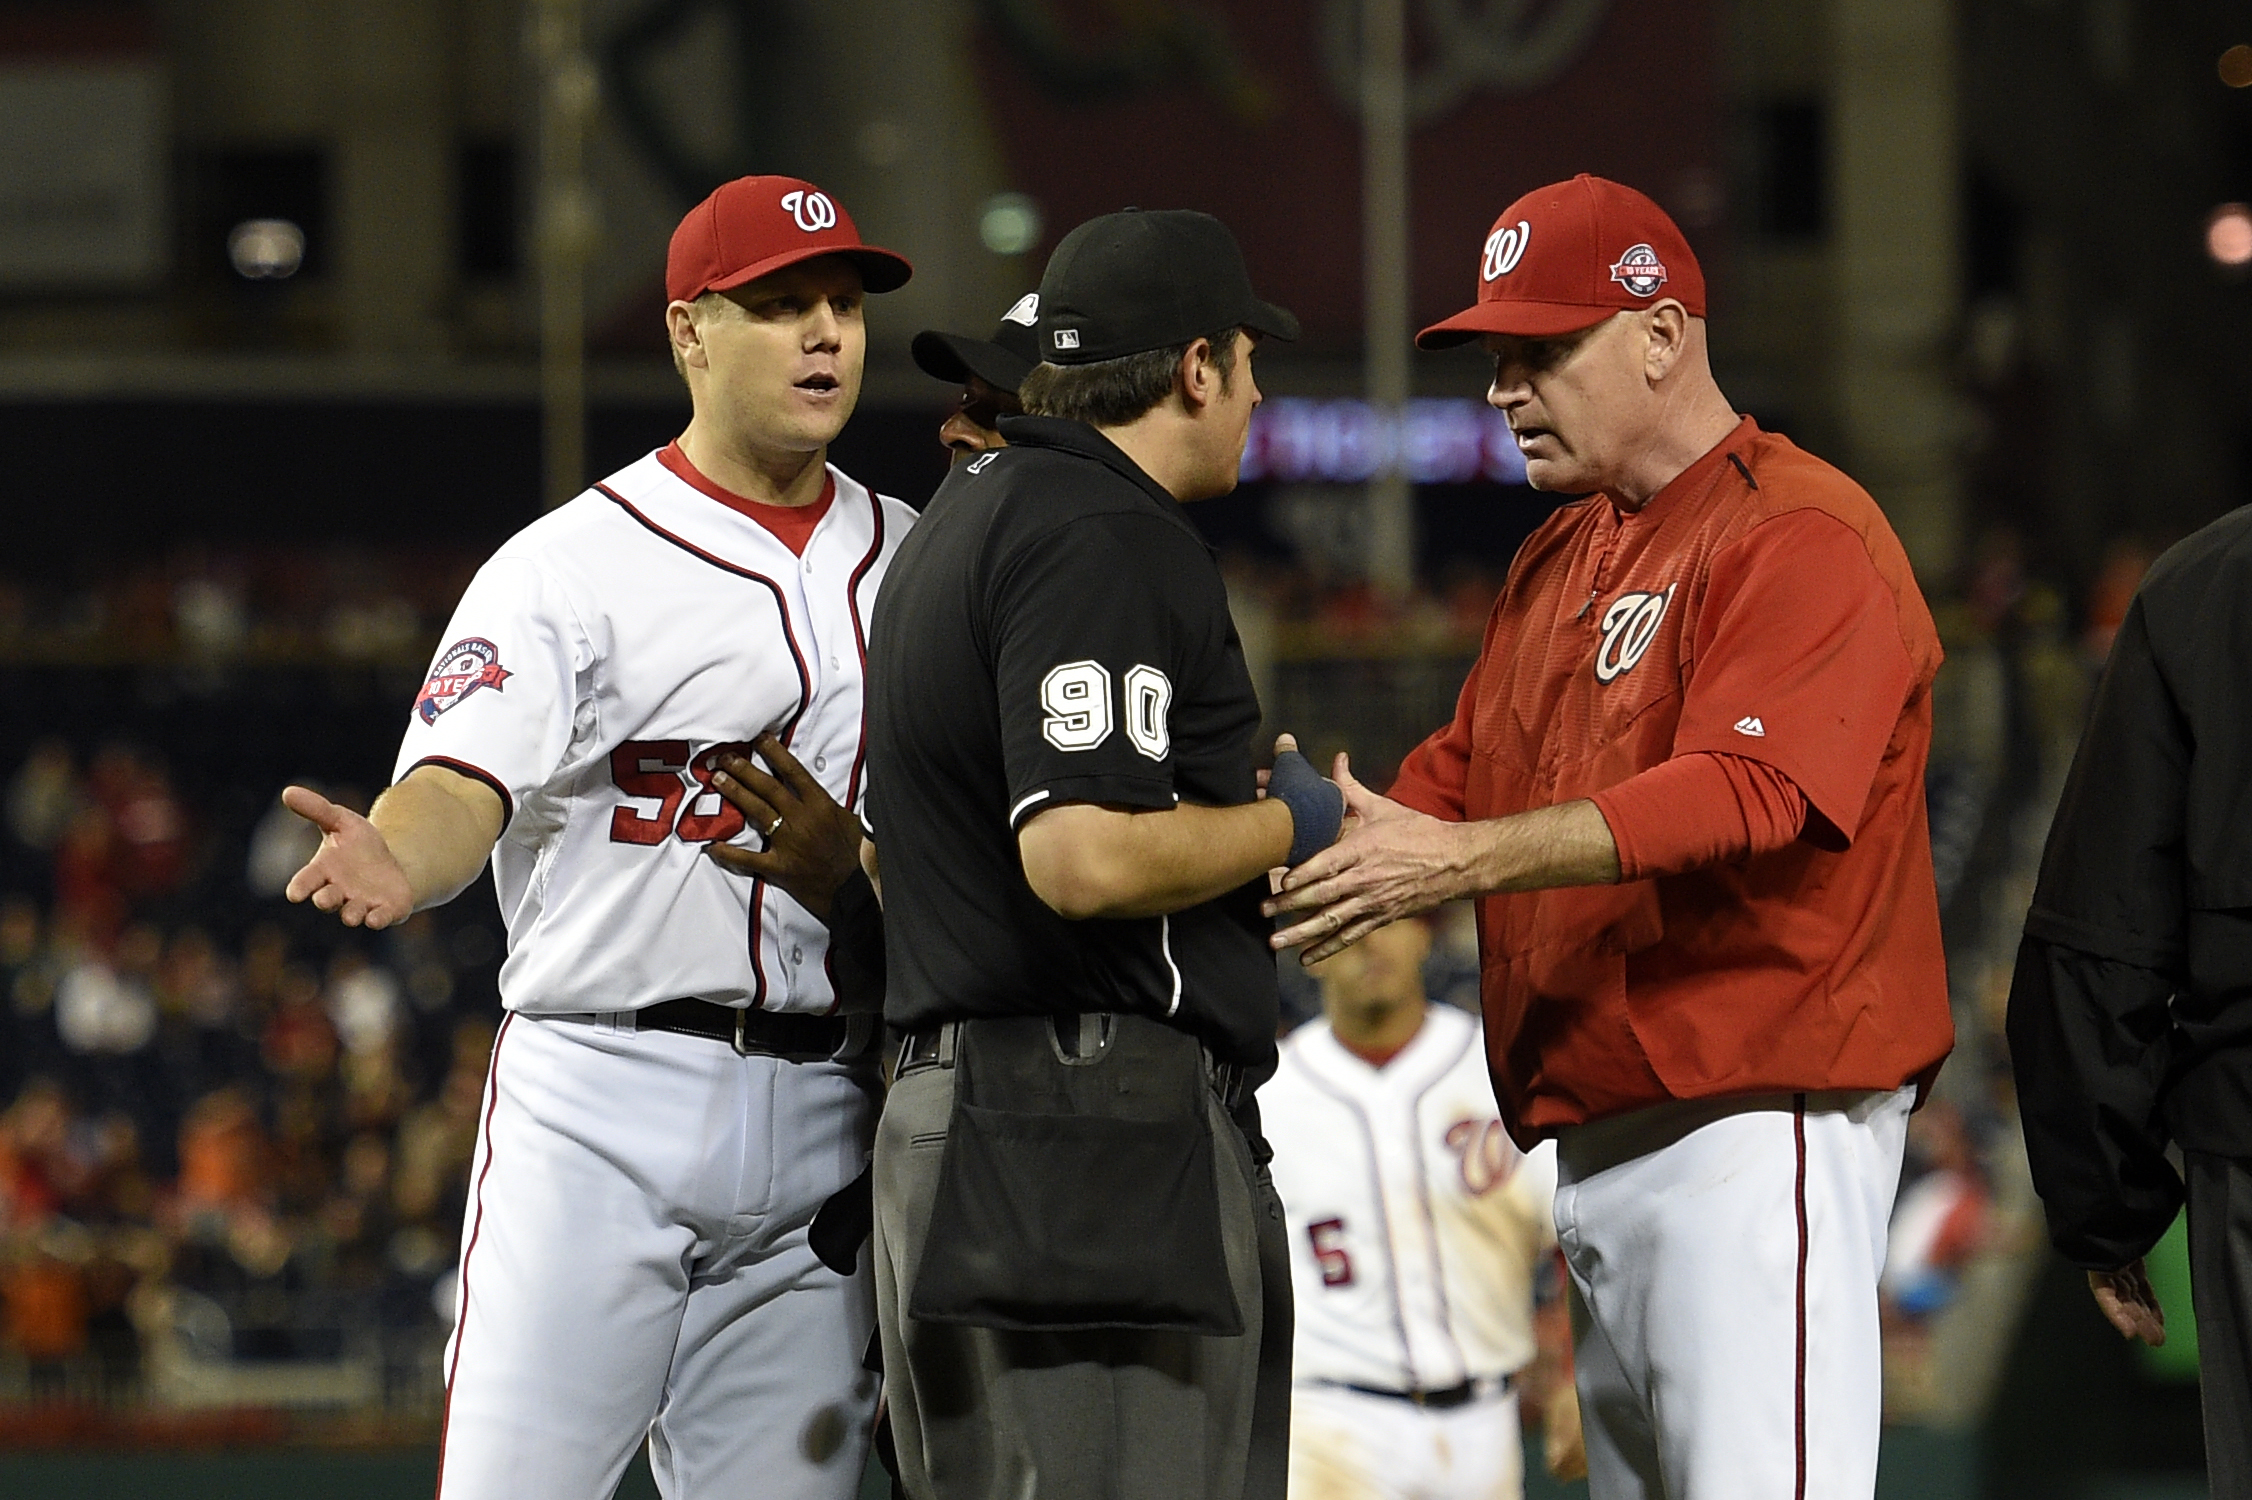 Washington Nationals relief pitcher Jonathan Papelbon, left, reacts as manager Matt Williams , right, talks with home plate umpire Mark Ripperger (90) during the ninth inning of an interleague baseball game, Wednesday, Sept. 23, 2015, in Washington. Papel